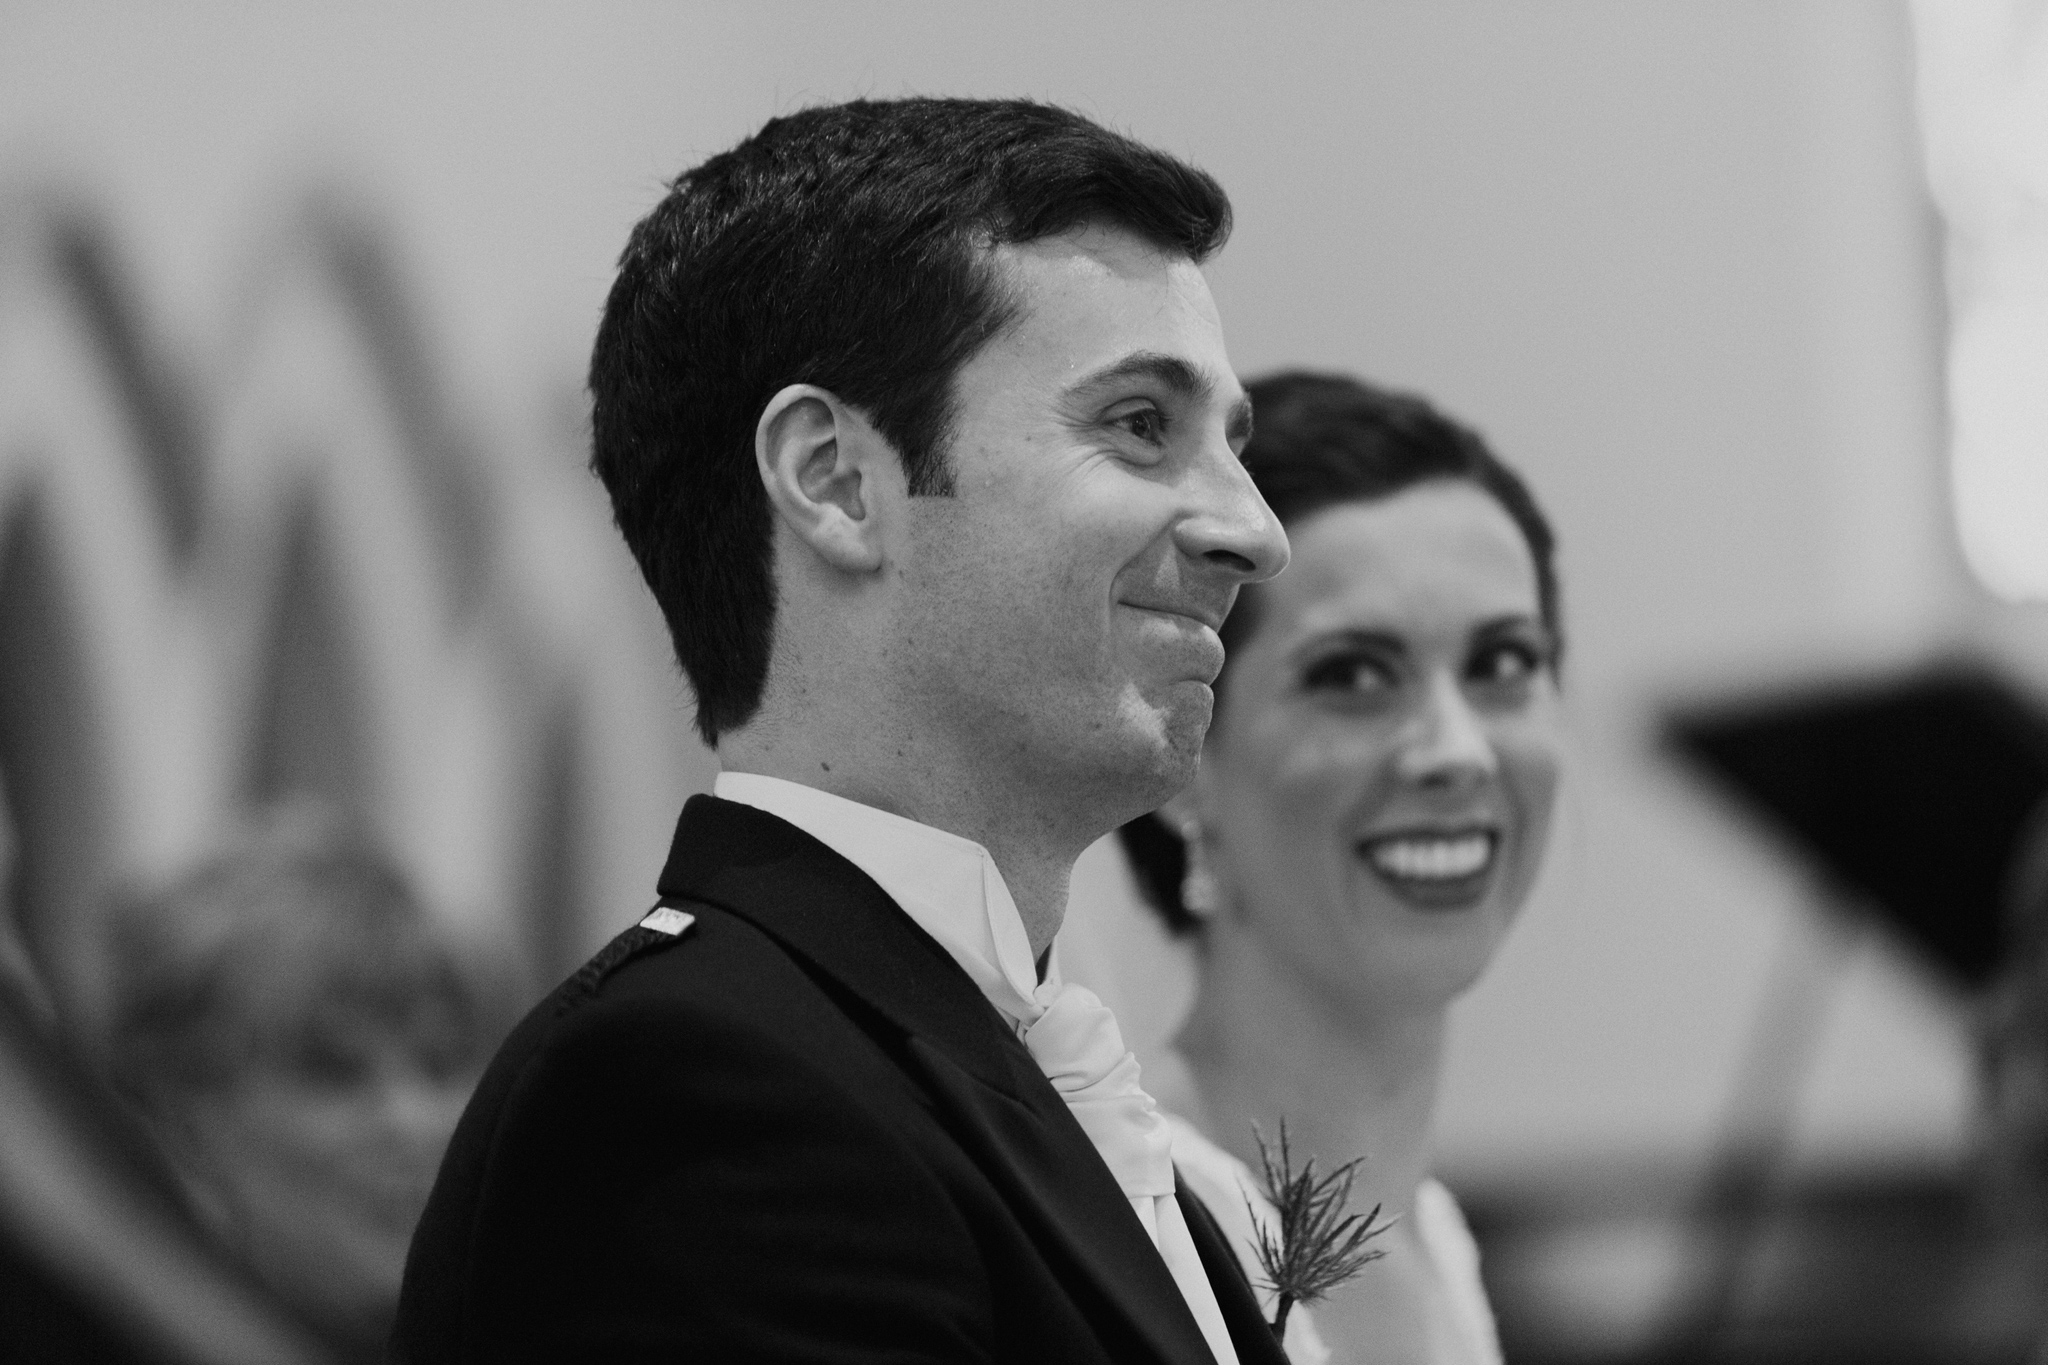 Bride smiles at groom while groom smiles and looks forward in church ceremony